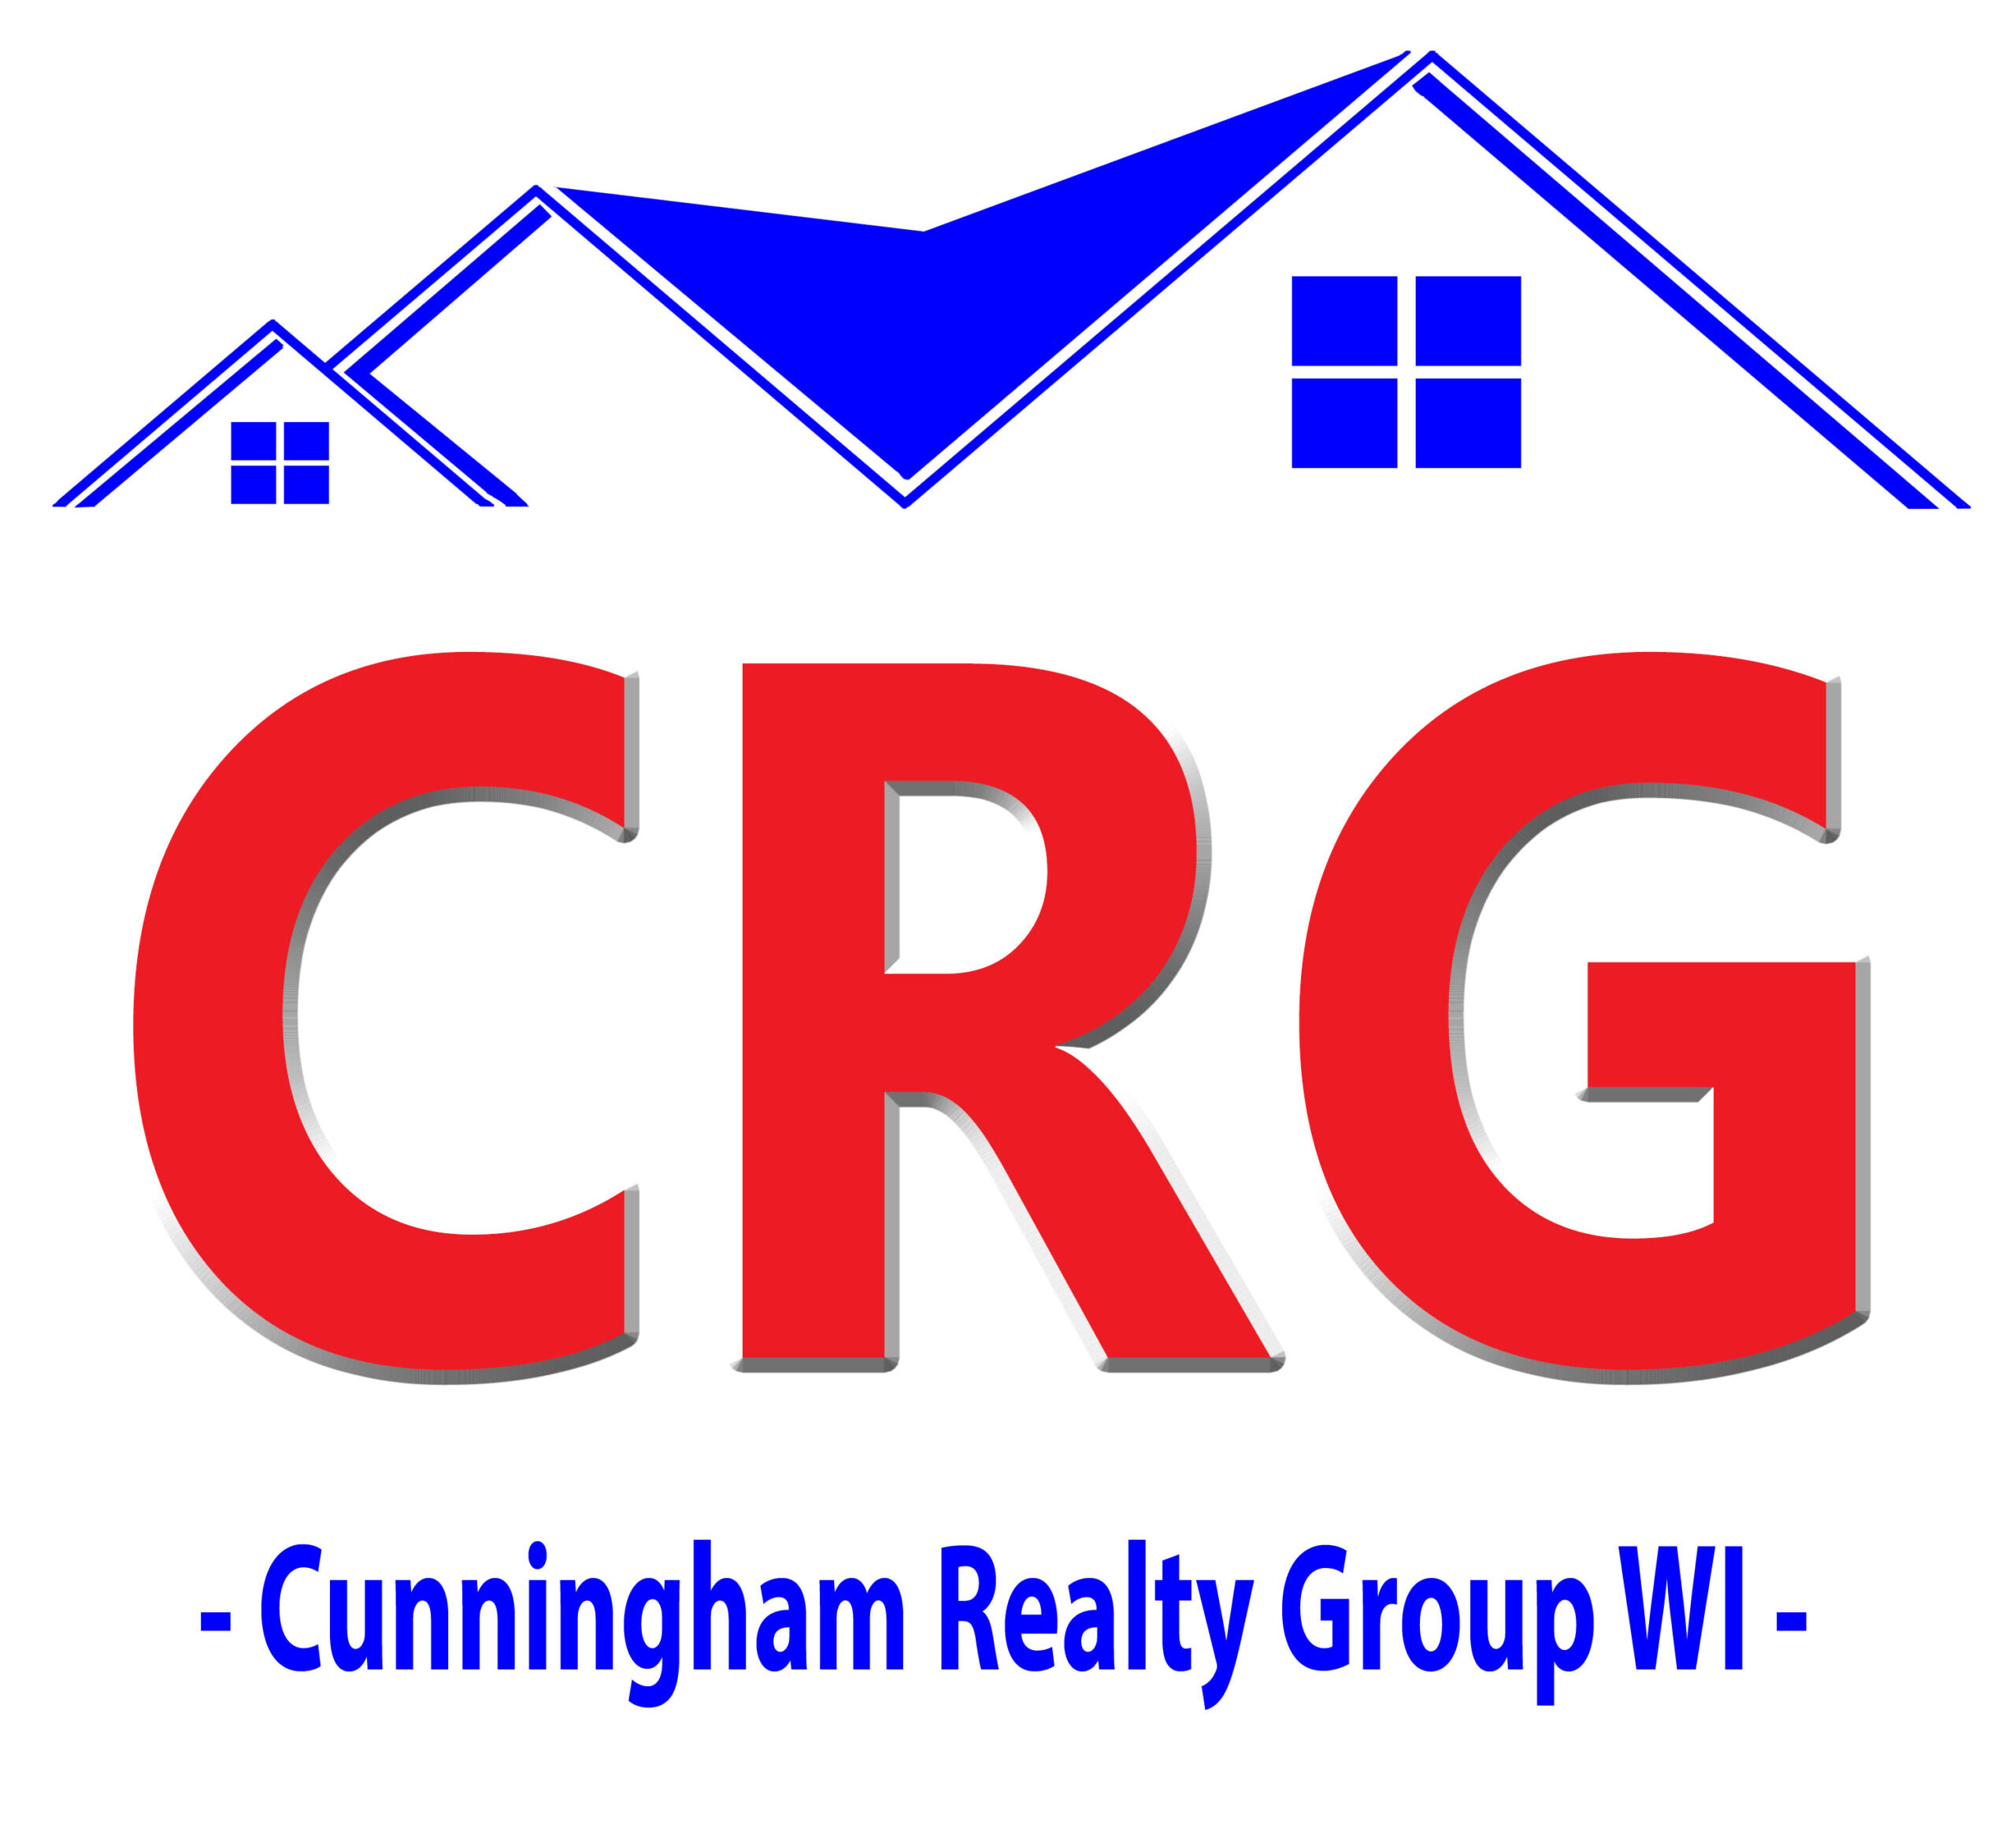 Cunningham Realty Group WI